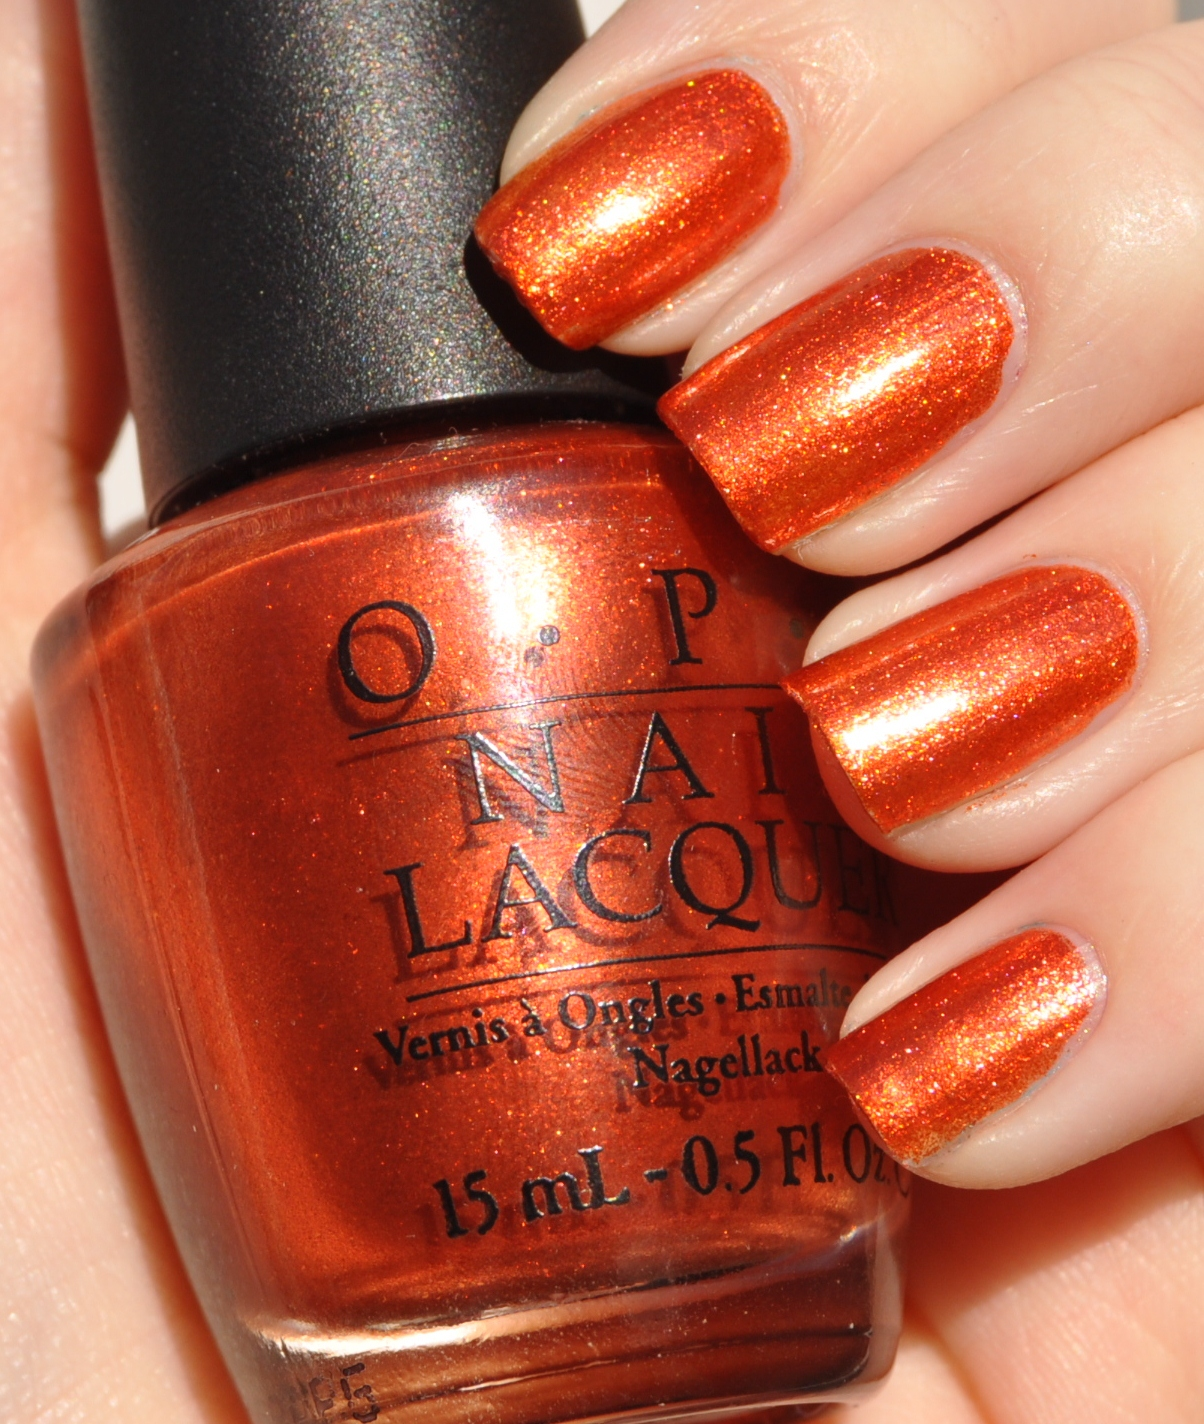 Paleberry: Burnt Orange